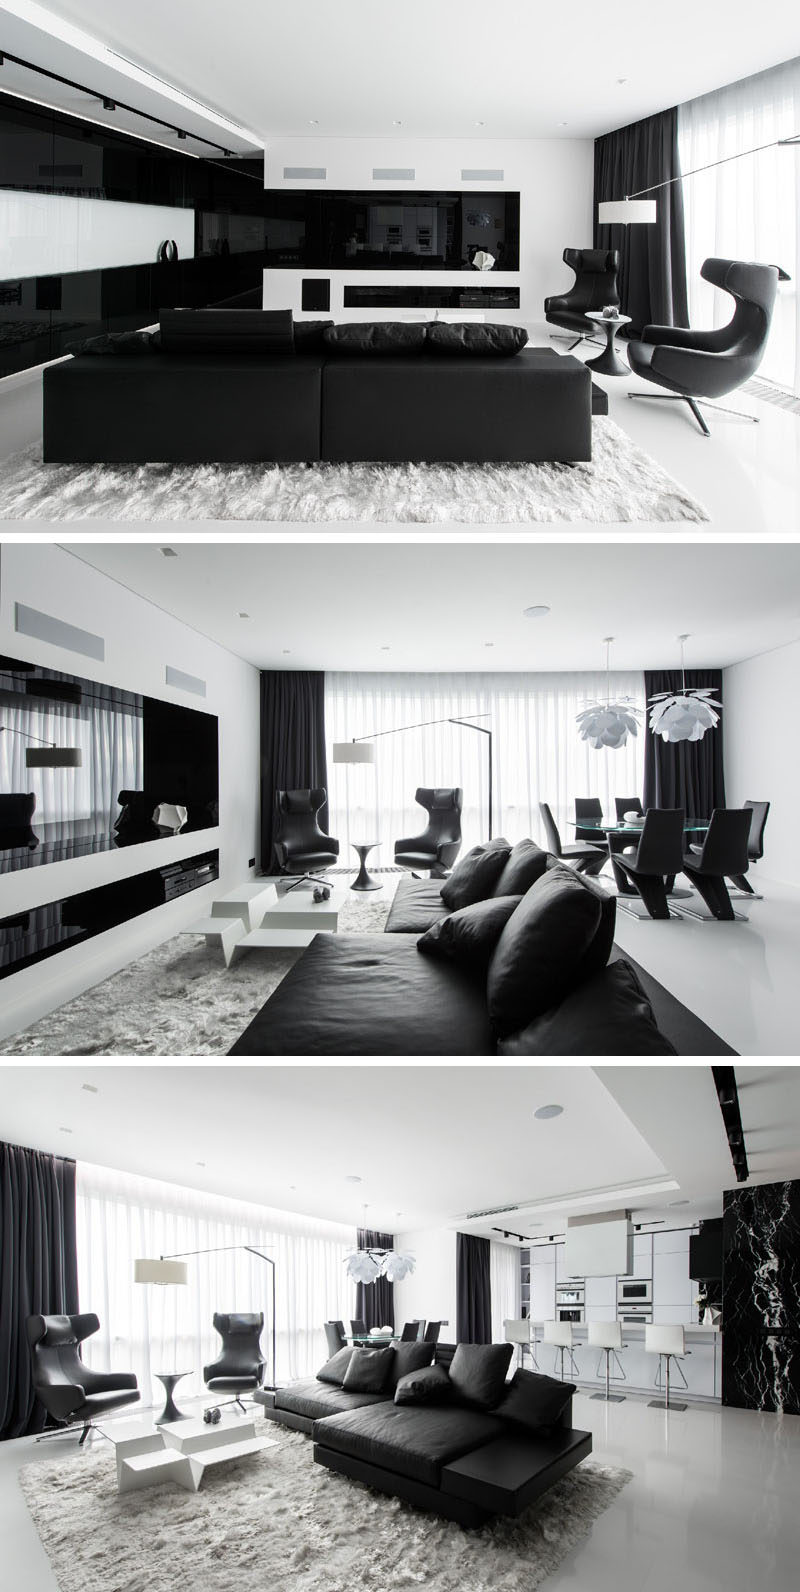 This Apartment Has An Almost Entirely Black And White Interior ...